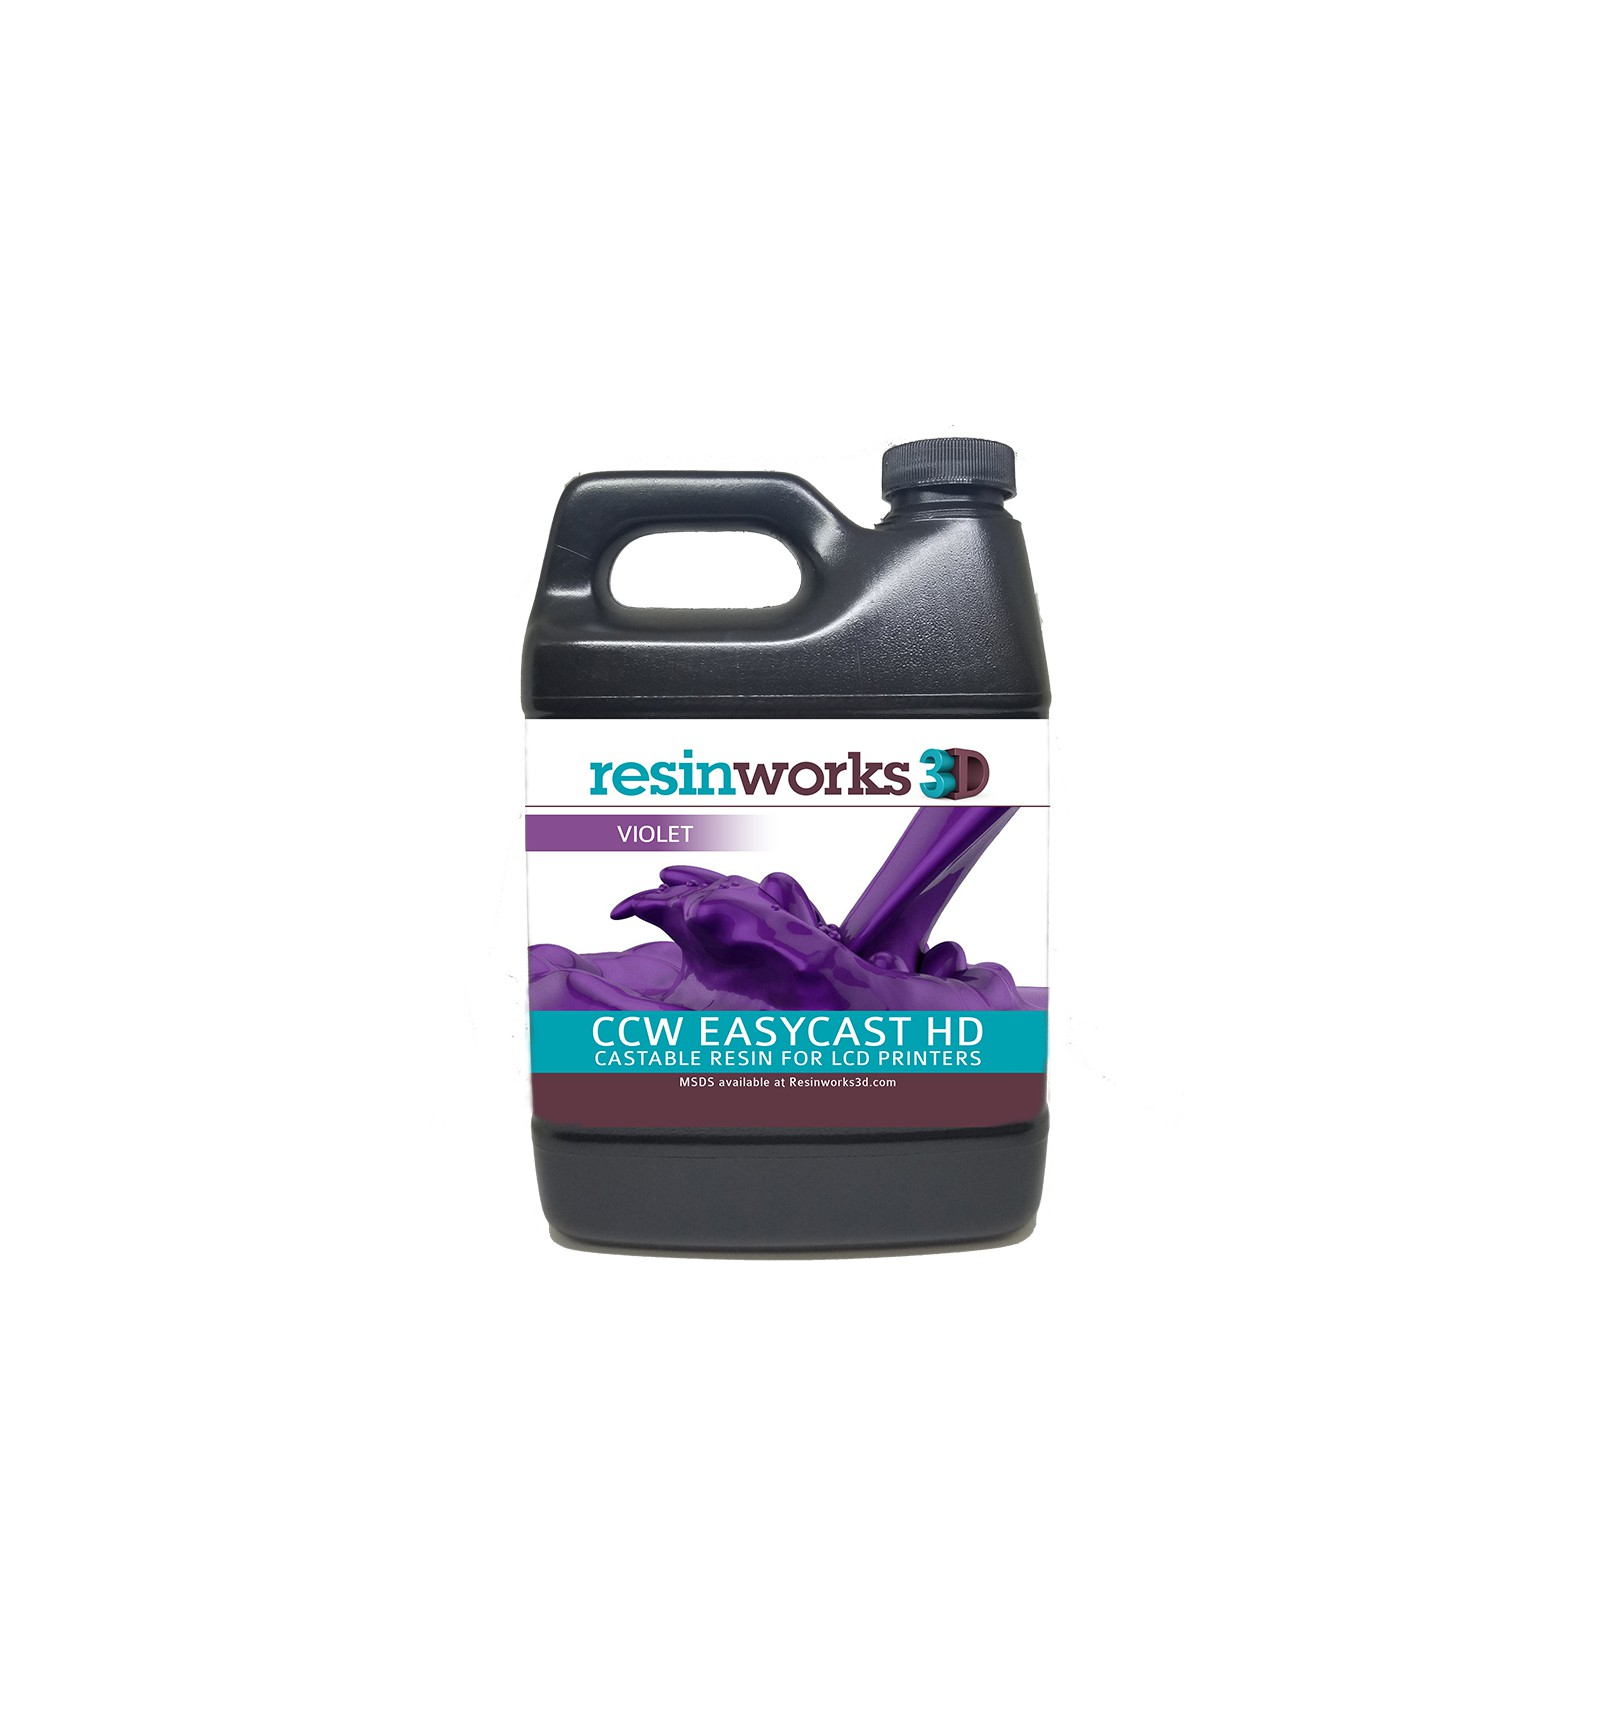 CCW EasyCast HD LCD Violet Castable Resin